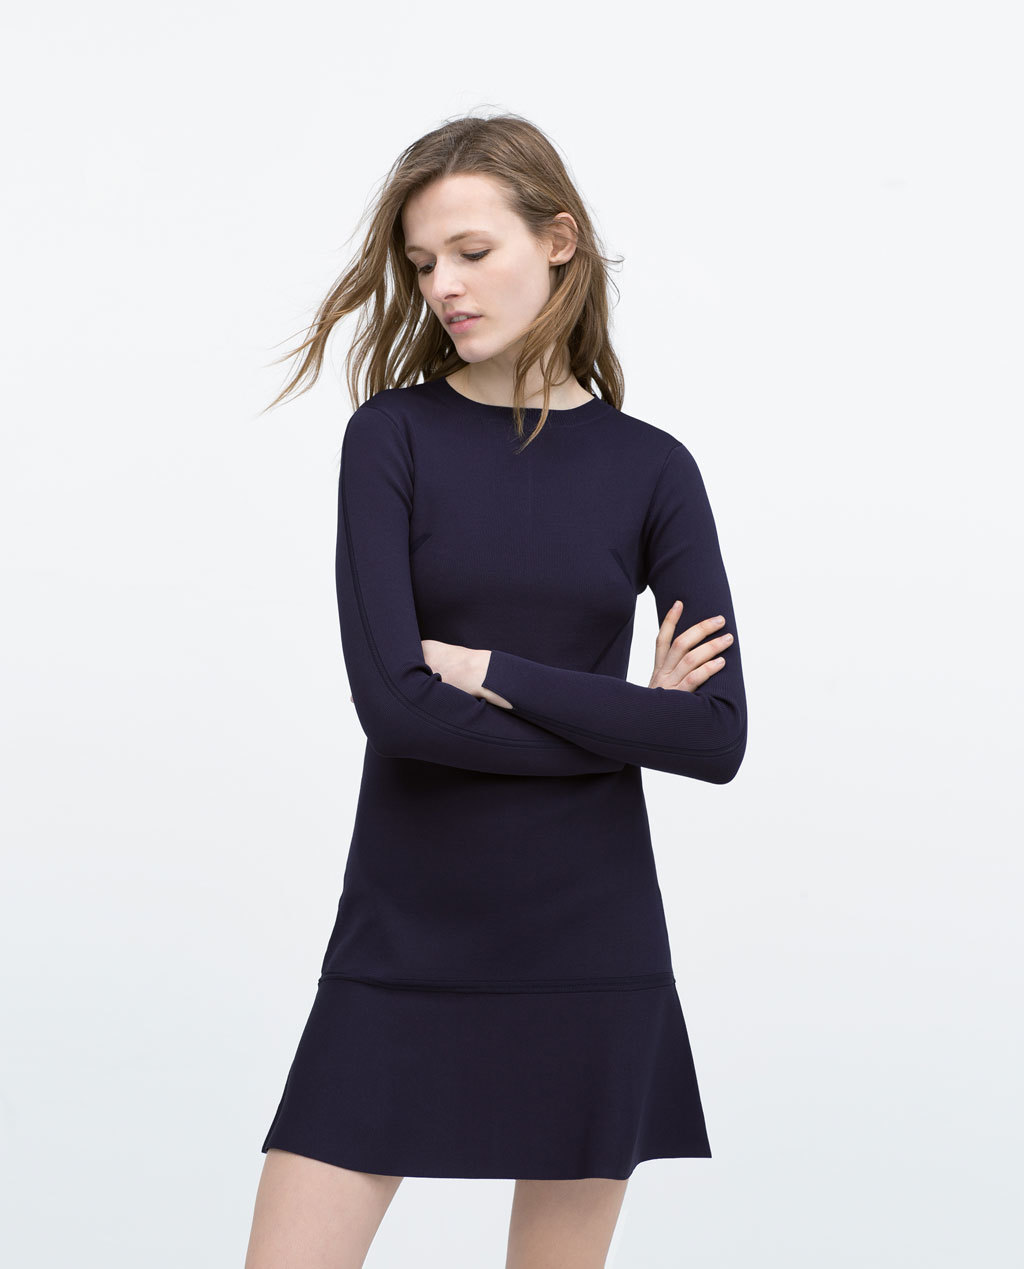 Long Sleeve Mini Dress - style: shift; length: mid thigh; pattern: plain; predominant colour: black; occasions: casual, evening, creative work; fit: soft a-line; fibres: viscose/rayon - stretch; neckline: crew; sleeve length: long sleeve; sleeve style: standard; pattern type: fabric; texture group: other - light to midweight; season: s/s 2015